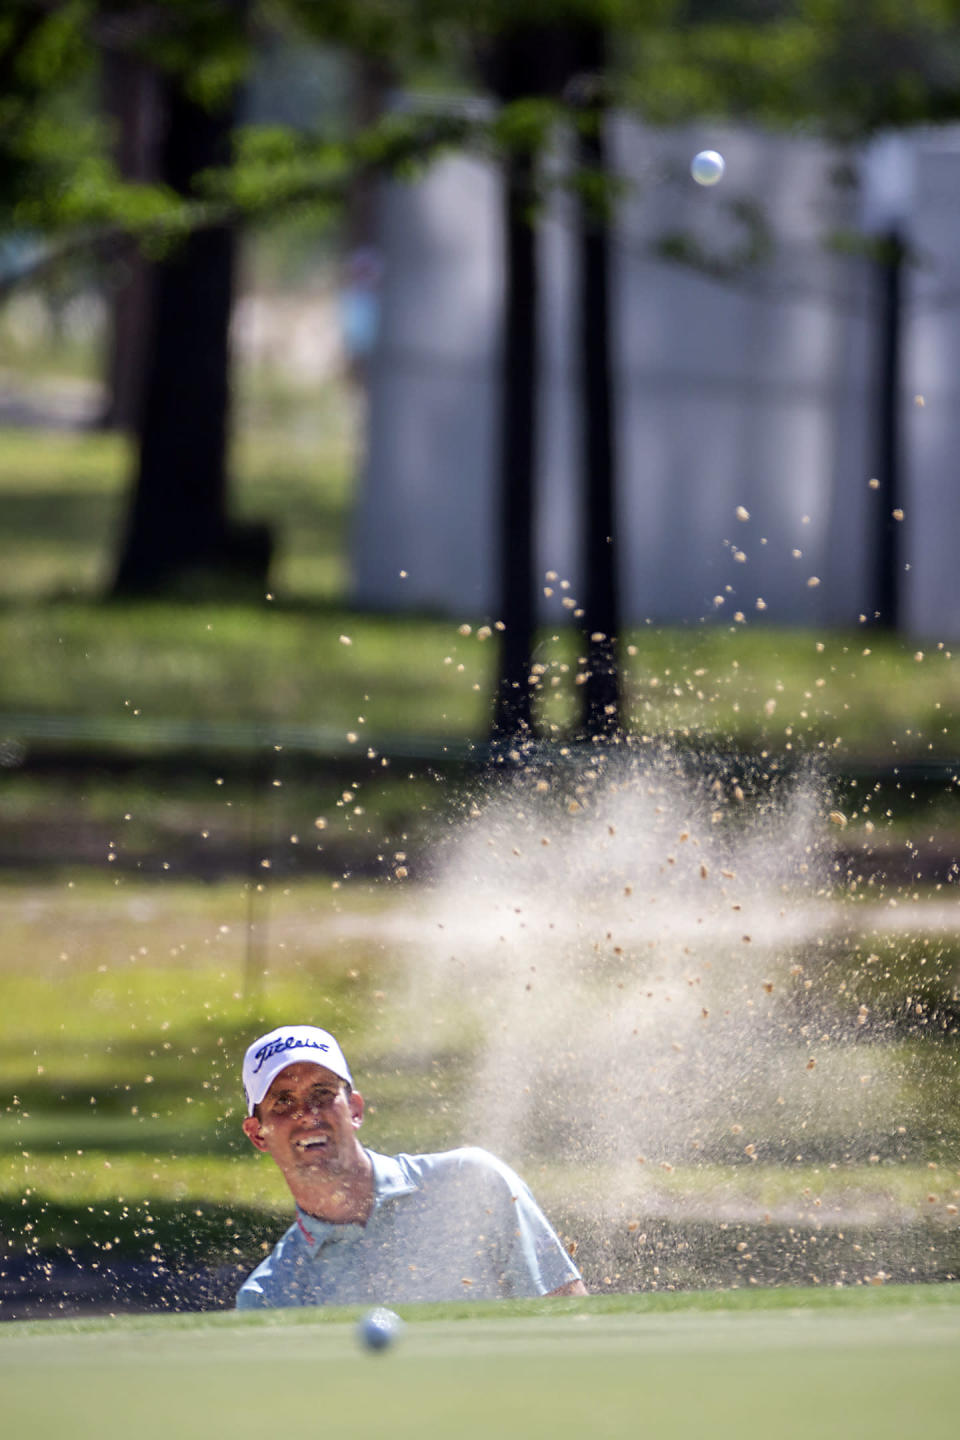 Chesson Hadley hits out of a bunker to the 12th green during the second round of the Palmetto Championship golf tournament in Ridgeland, S.C., Friday, June 11, 2021. (AP Photo/Stephen B. Morton)